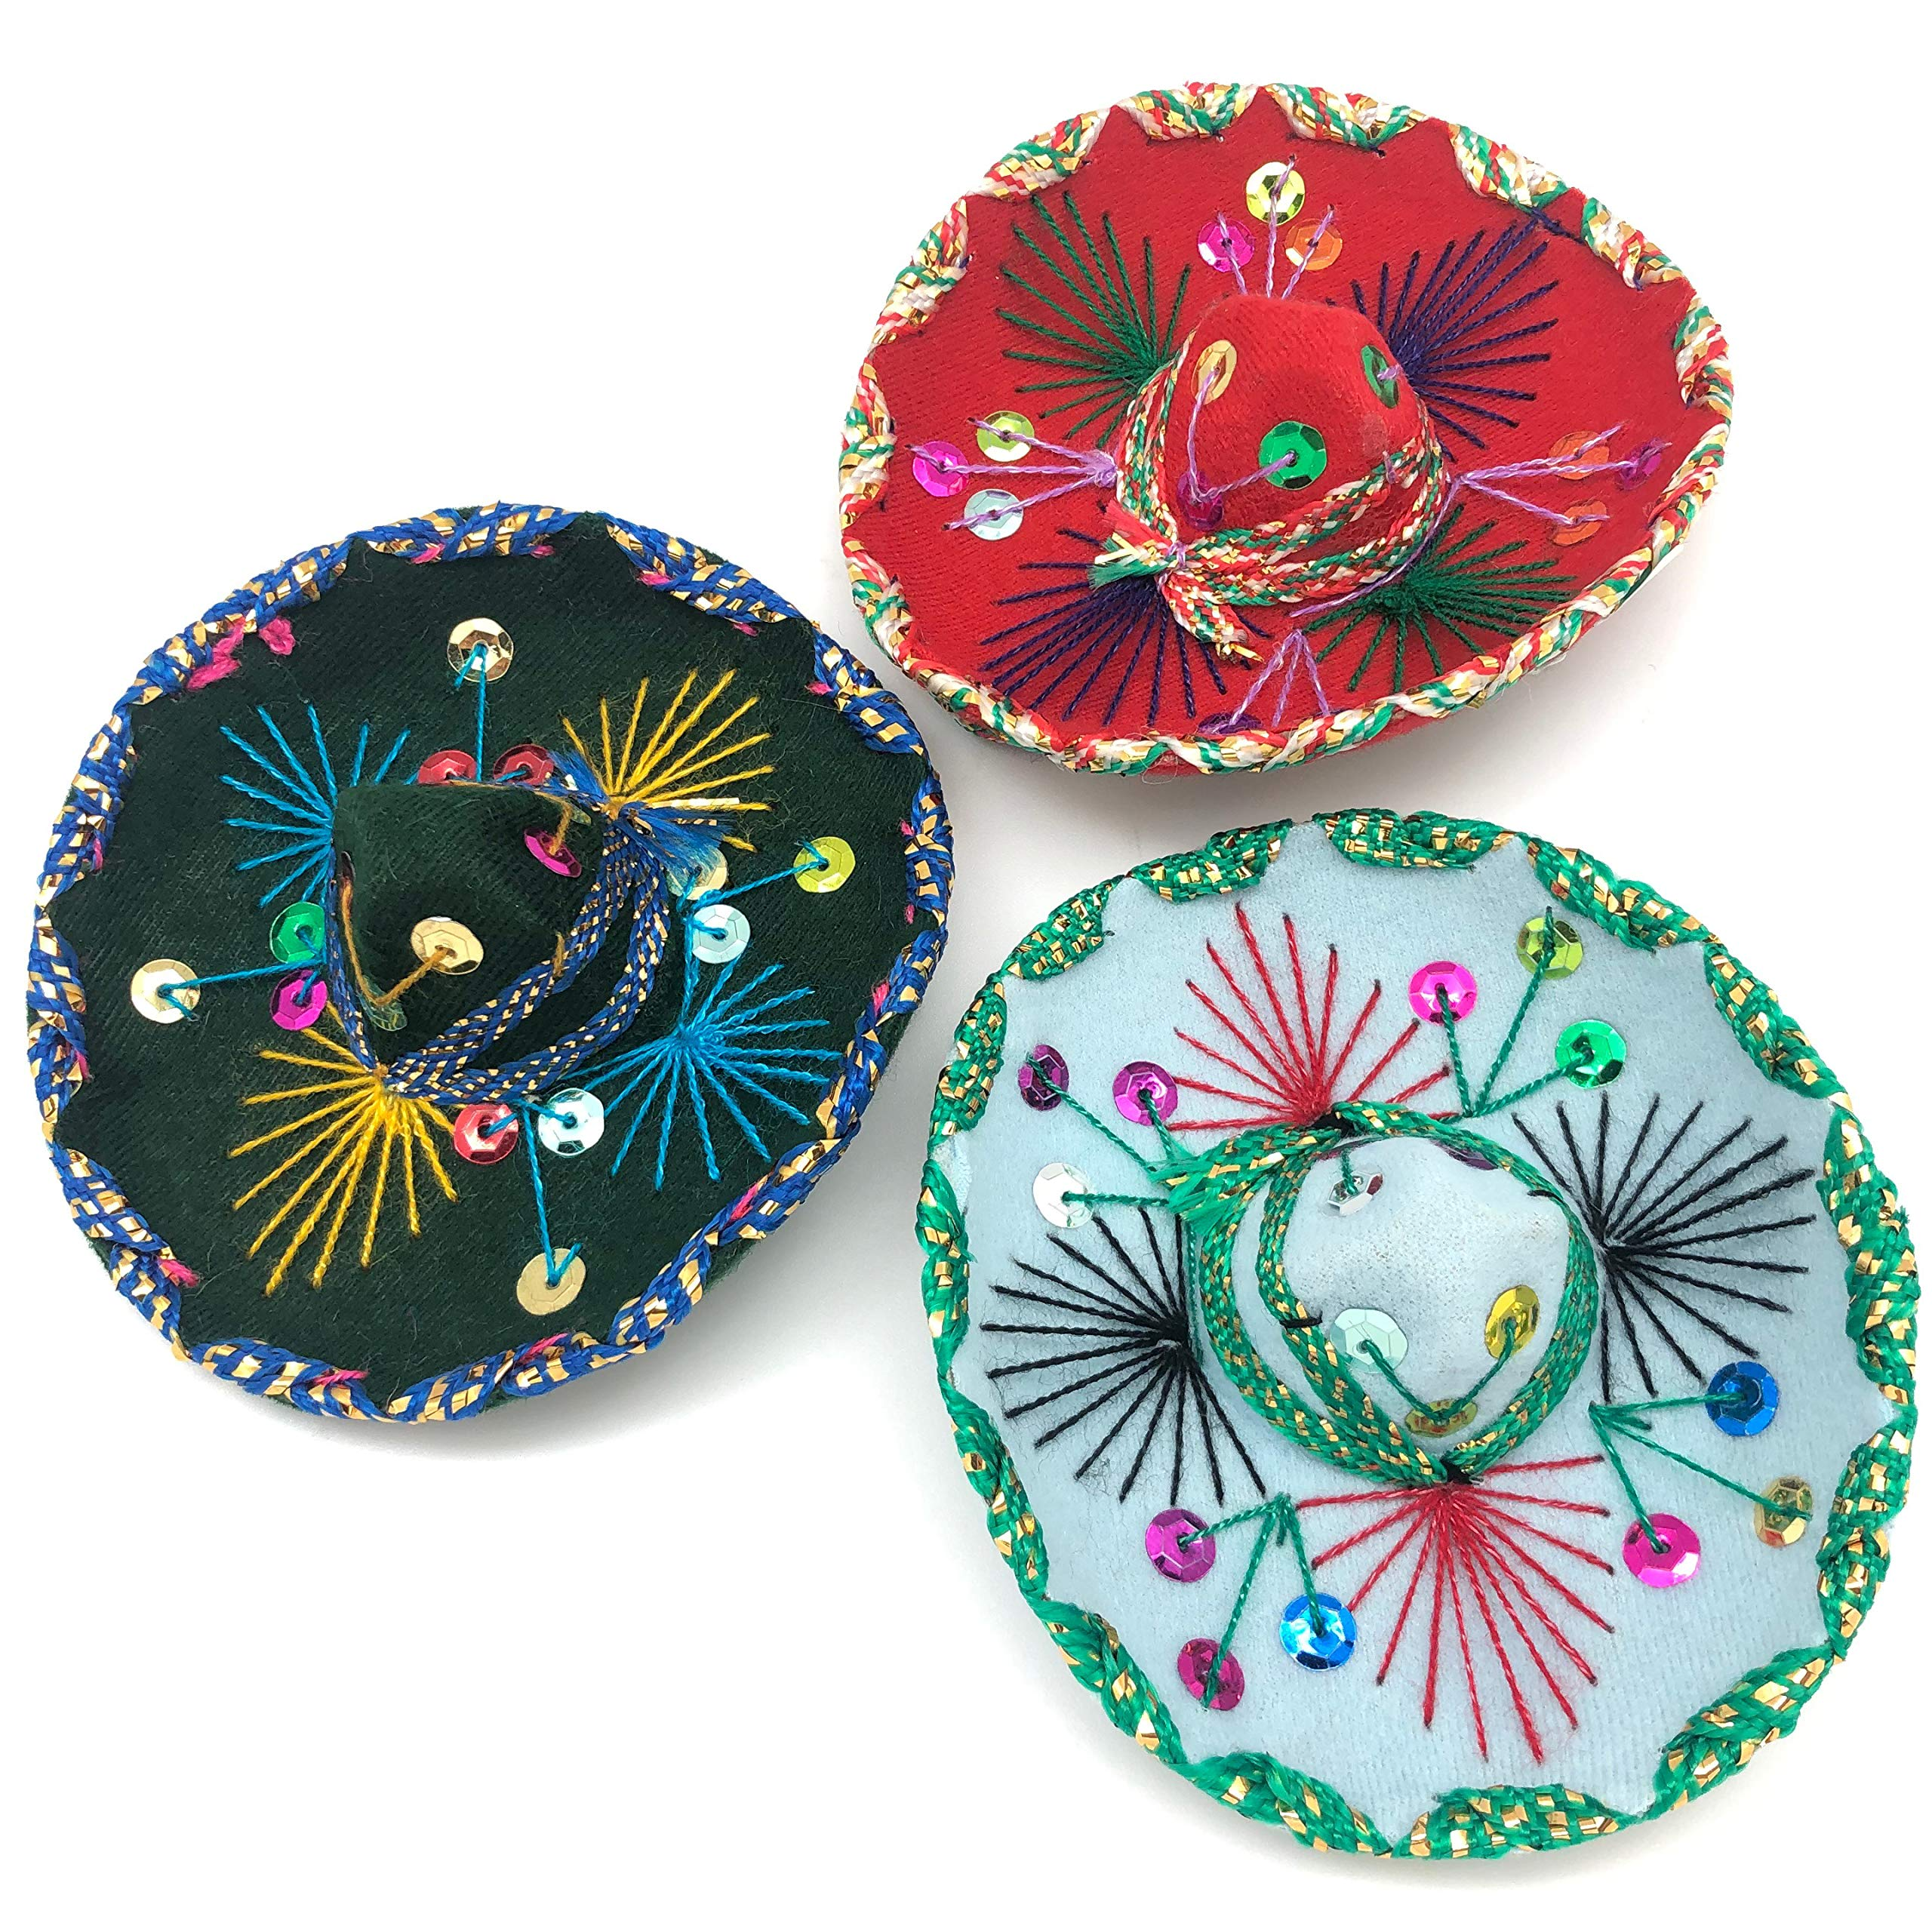 YAJUA Mariachi Mexican Mini Sombrero 5in, for Mexican Themed Party or Small Dog or Cat Hat (Assorted Set of 3)